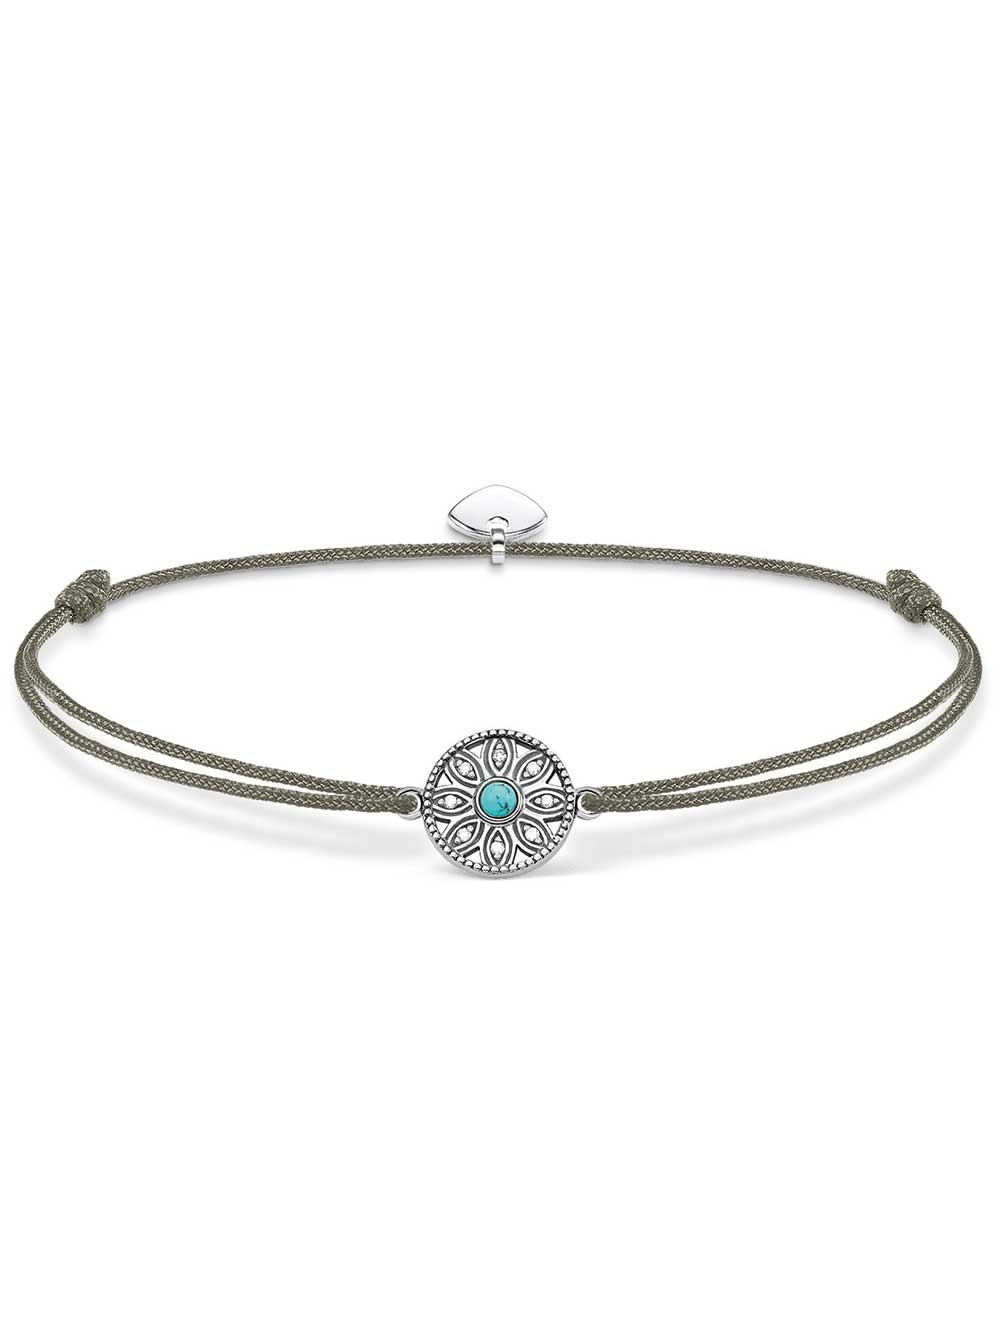 Thomas Sabo Armband Little Secrets LS022-378-5 14-20cm